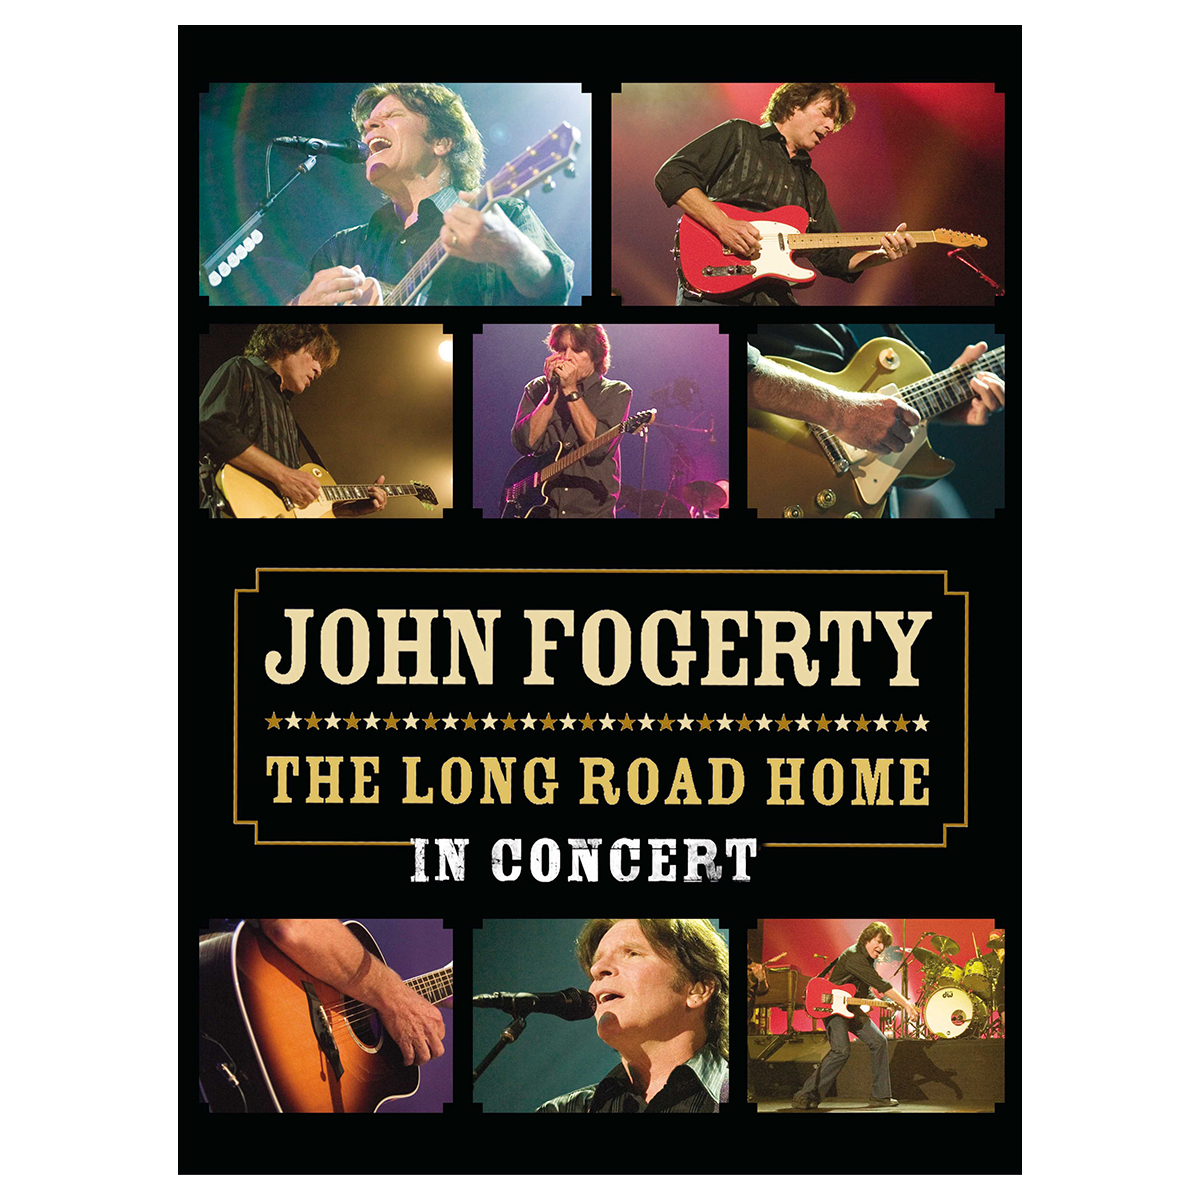 John Fogerty - The Long Road Home - The Concert DVD